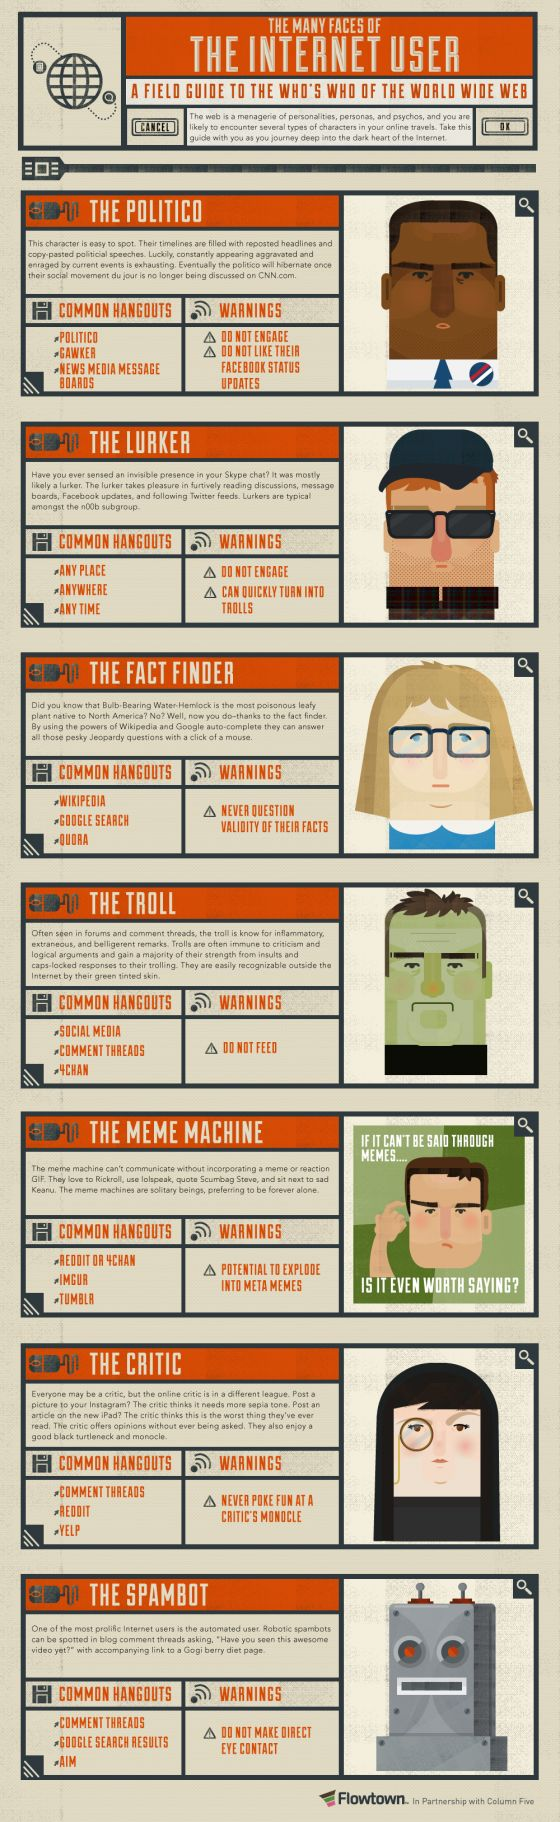 The Many Faces of the Internet